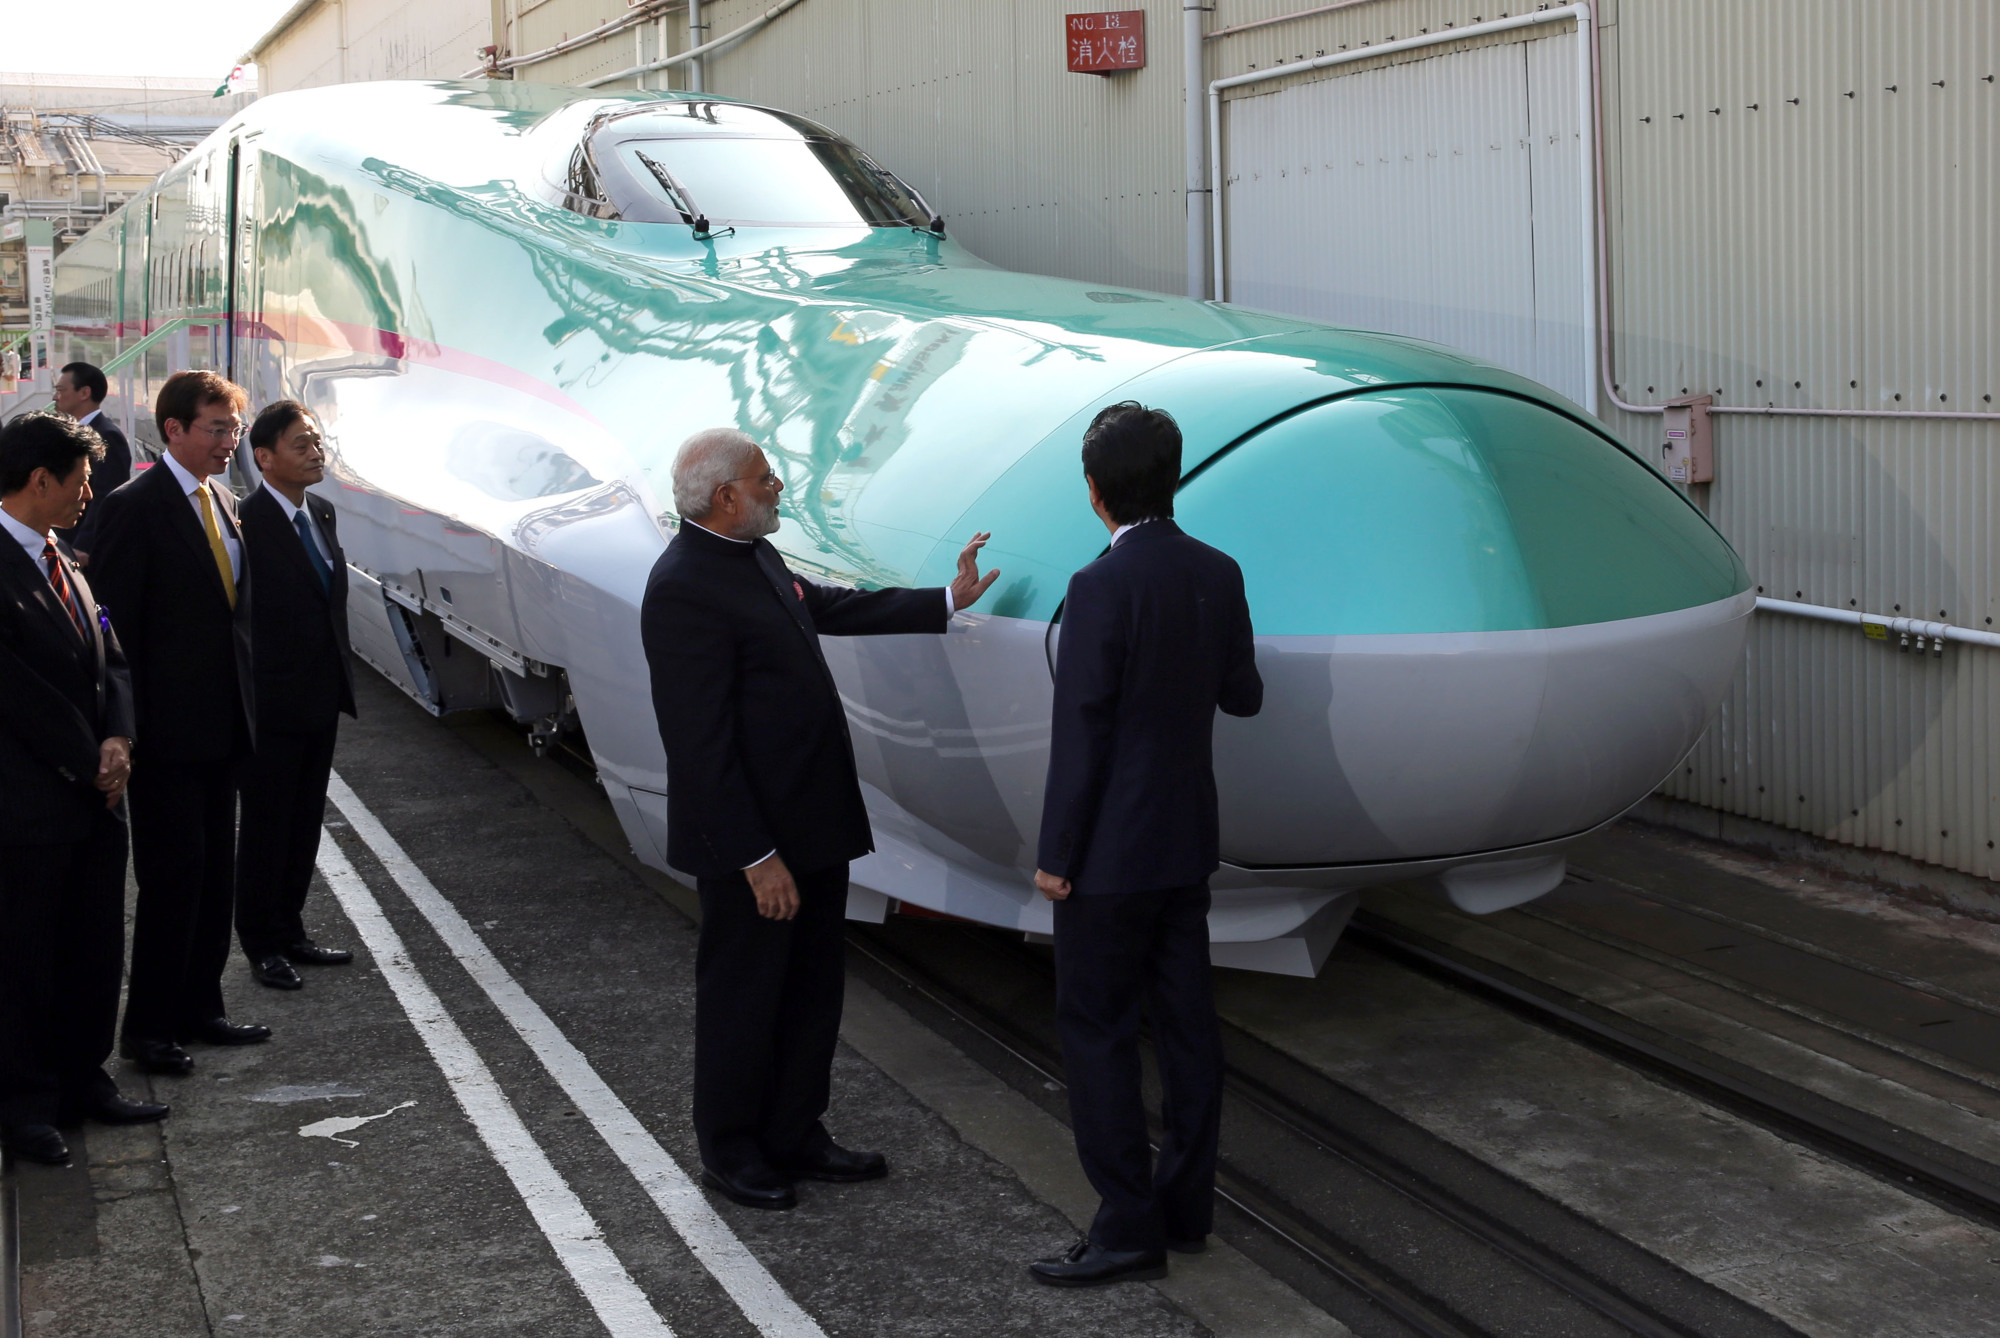 Indian Prime Minister Narendra Modi views an E5 series locomotive with Prime Minister Abe during his November 2016 visit to Japan. The E5 model was chosen for India's  first bullet train line, which will operate between Mumbai and Ahmedabad. | BLOOMBERG